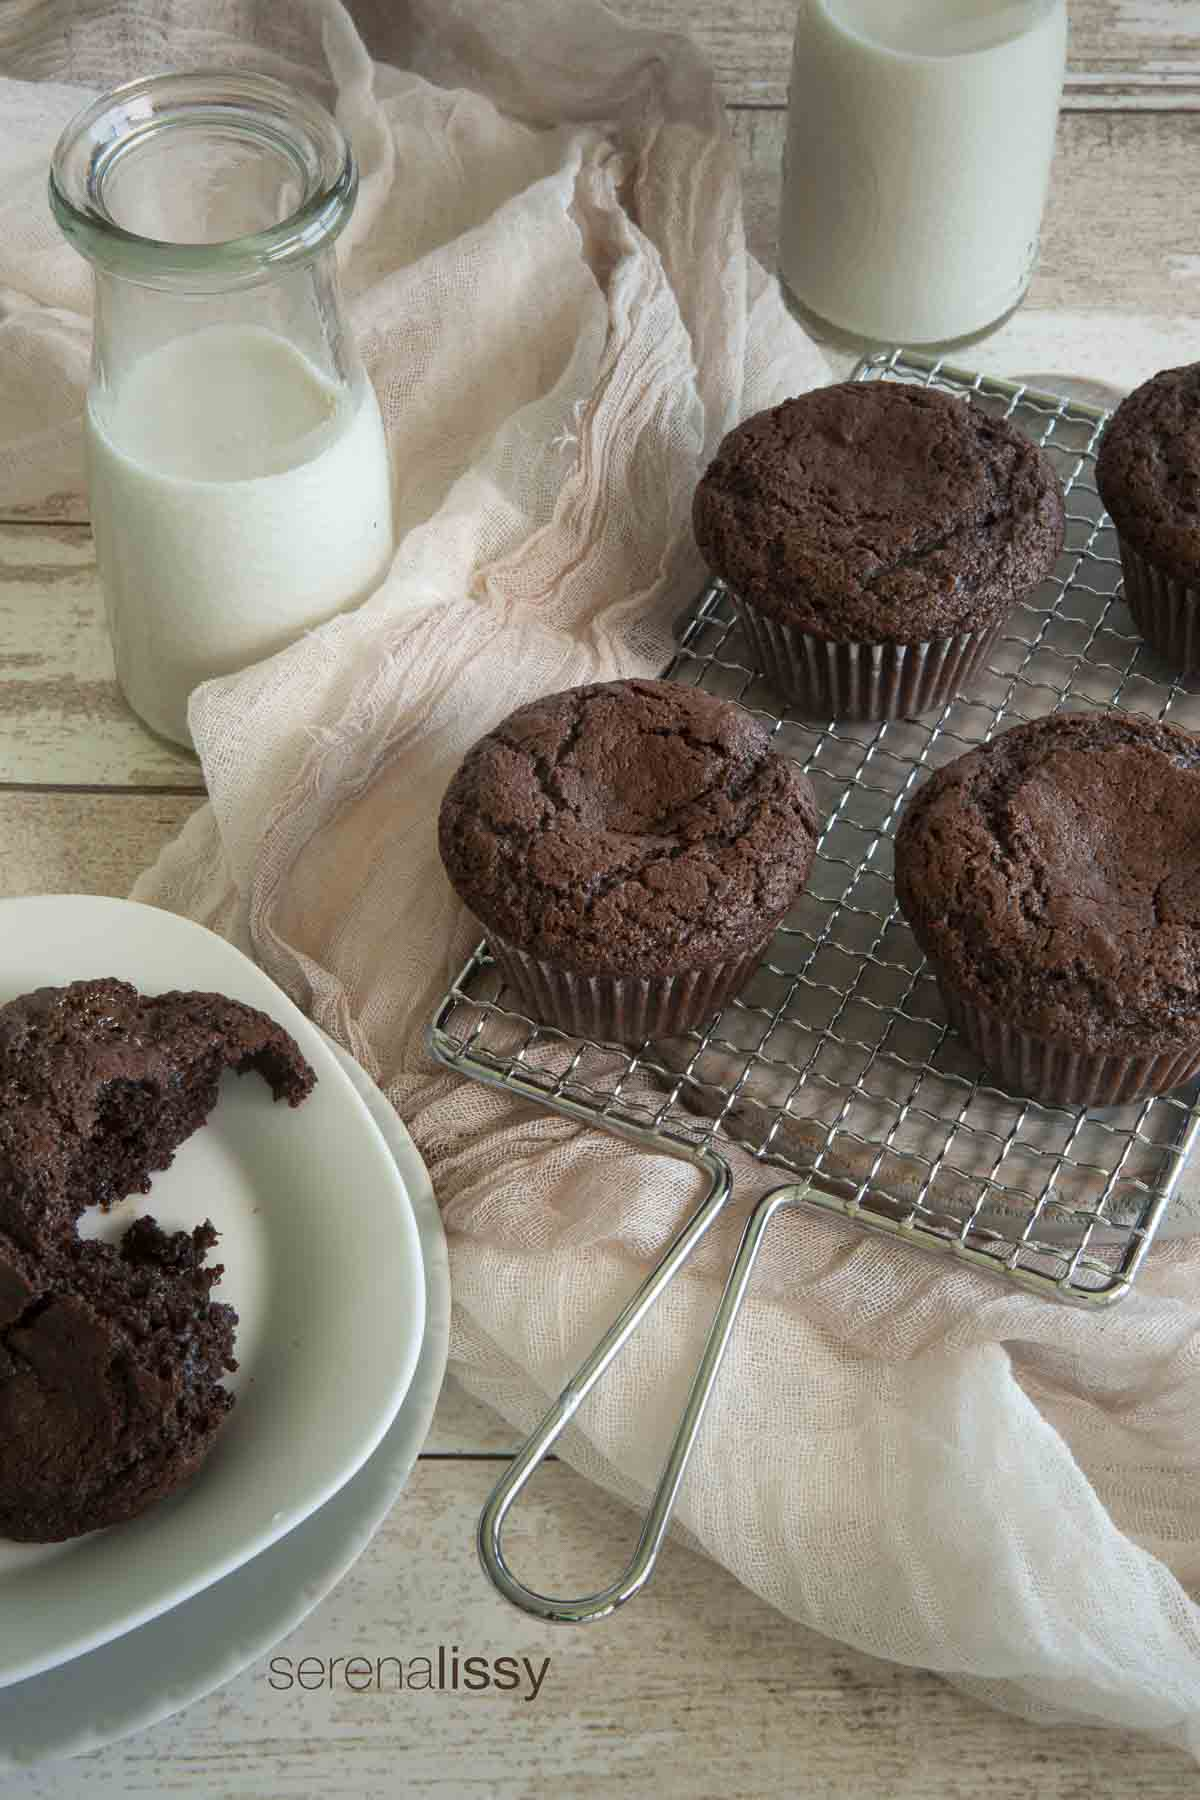 Chocolate Caramel Muffins On Cooling Rack